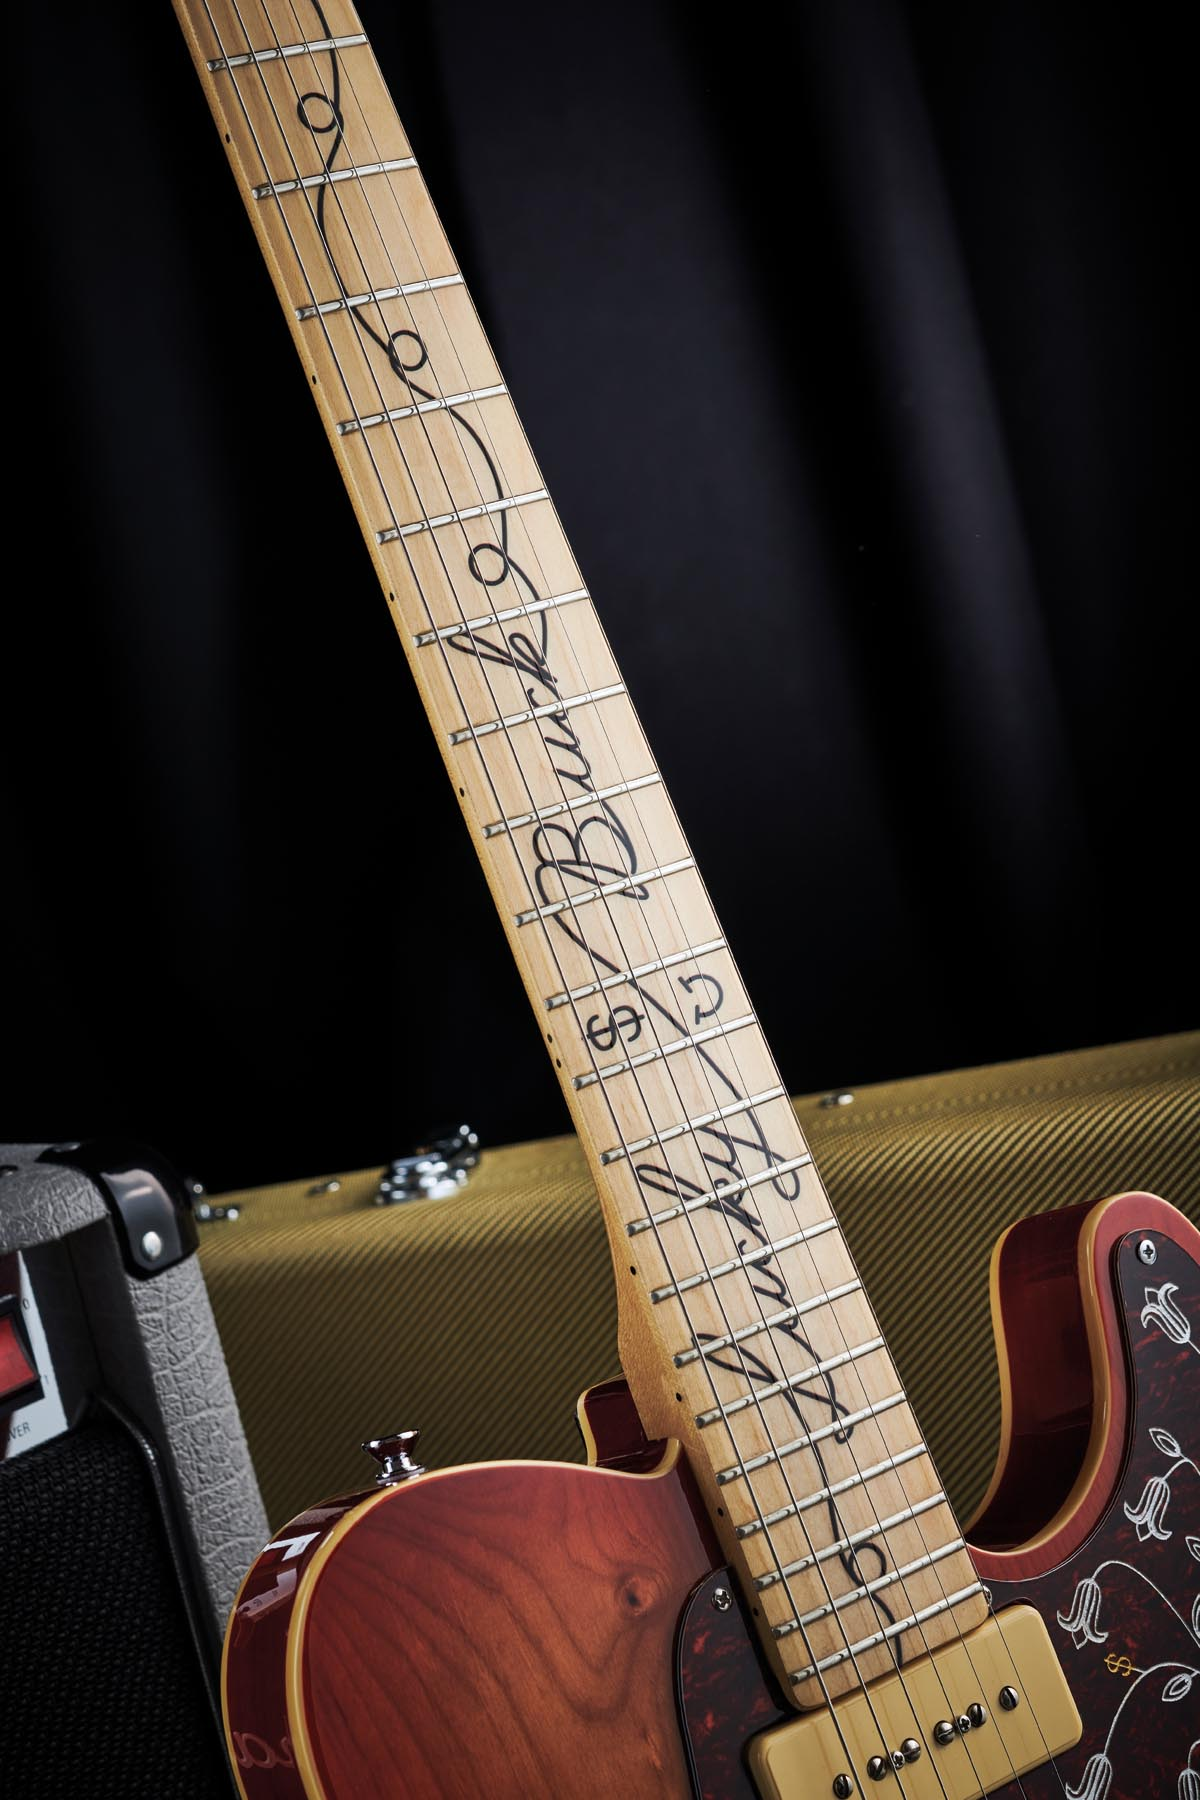 Like The Punkaster, Lucky Buck features a bolt-on maple neck with 22 medium frets and a slippery Graph Tech top nut. There's some cool decor here, too, in the shape of a rope decal that spells out the signature model's owner Lucky Buck.